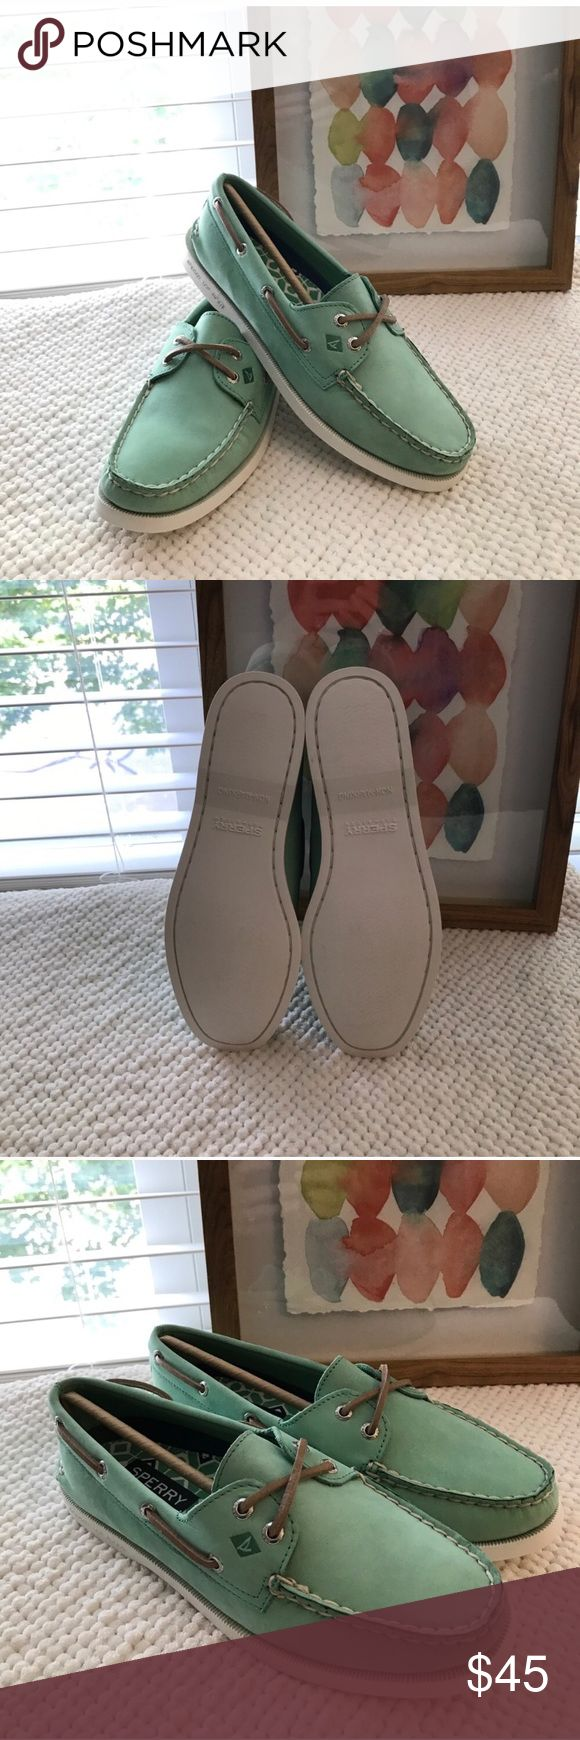 Sperry Mint color brand new leather boat shoes Brand new waxed leather with box! Sperry Topsiders!! Sperry Top-Sider Shoes Flats & Loafers